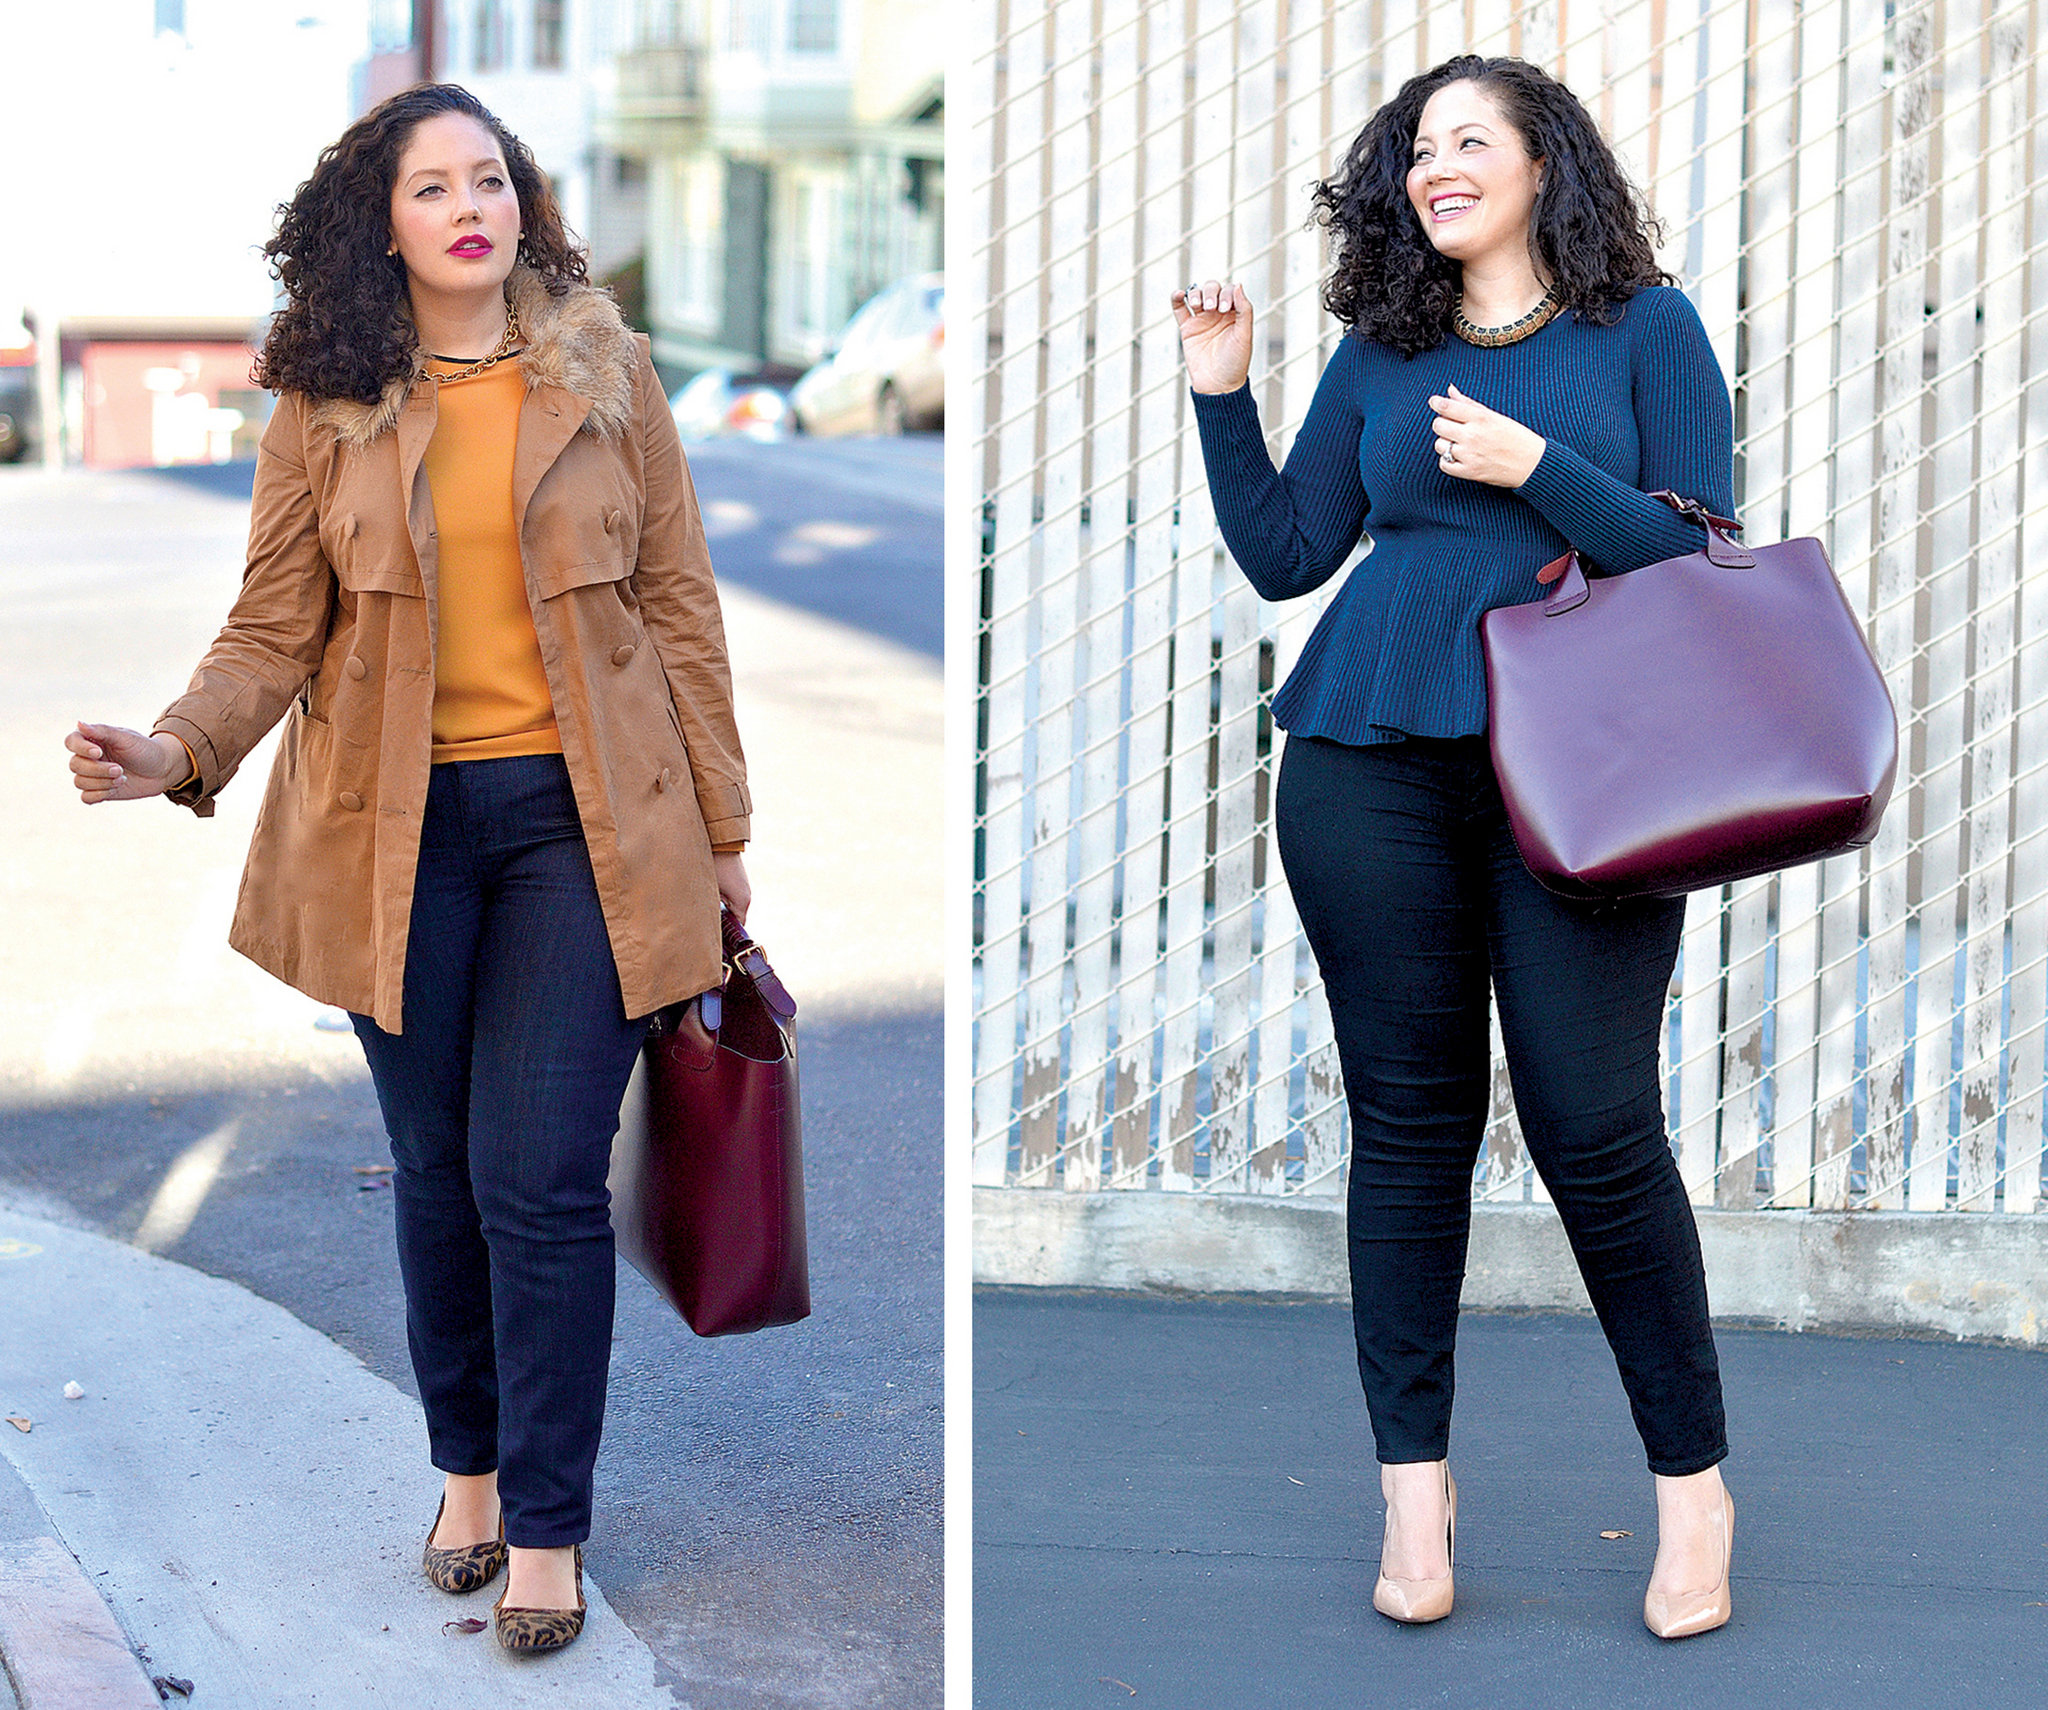 Big W Photo Sizes Curve Appeal Fashion Is Taking Note Of Plus Size Women